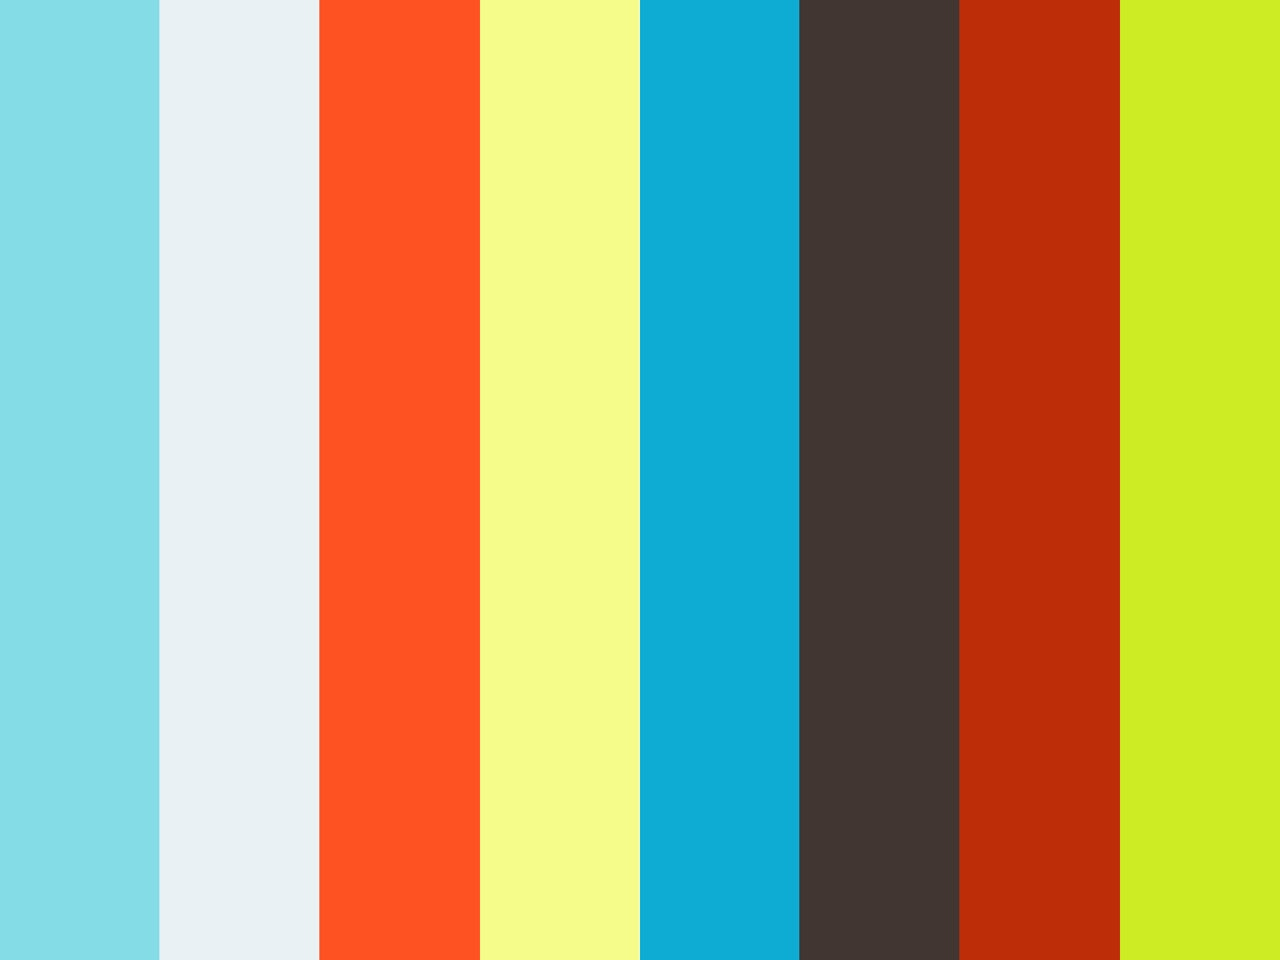 Gracie Sydney 7- Seven arm locks from side control